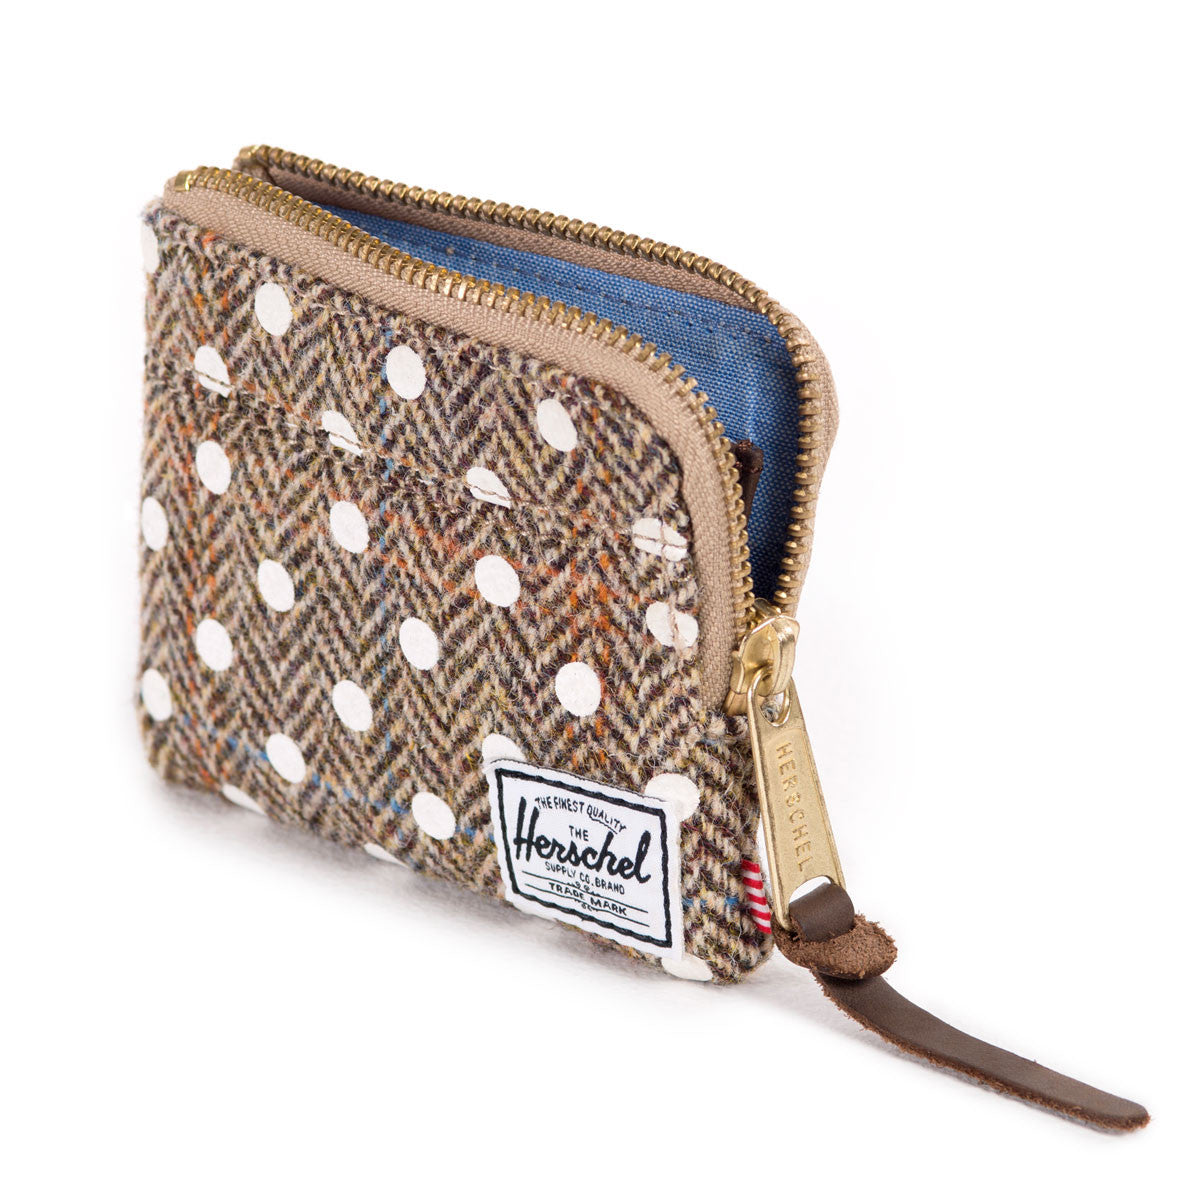 Herschel Supply Co.: Johnny Wallet - Harris Tweed / White Polka Dot open